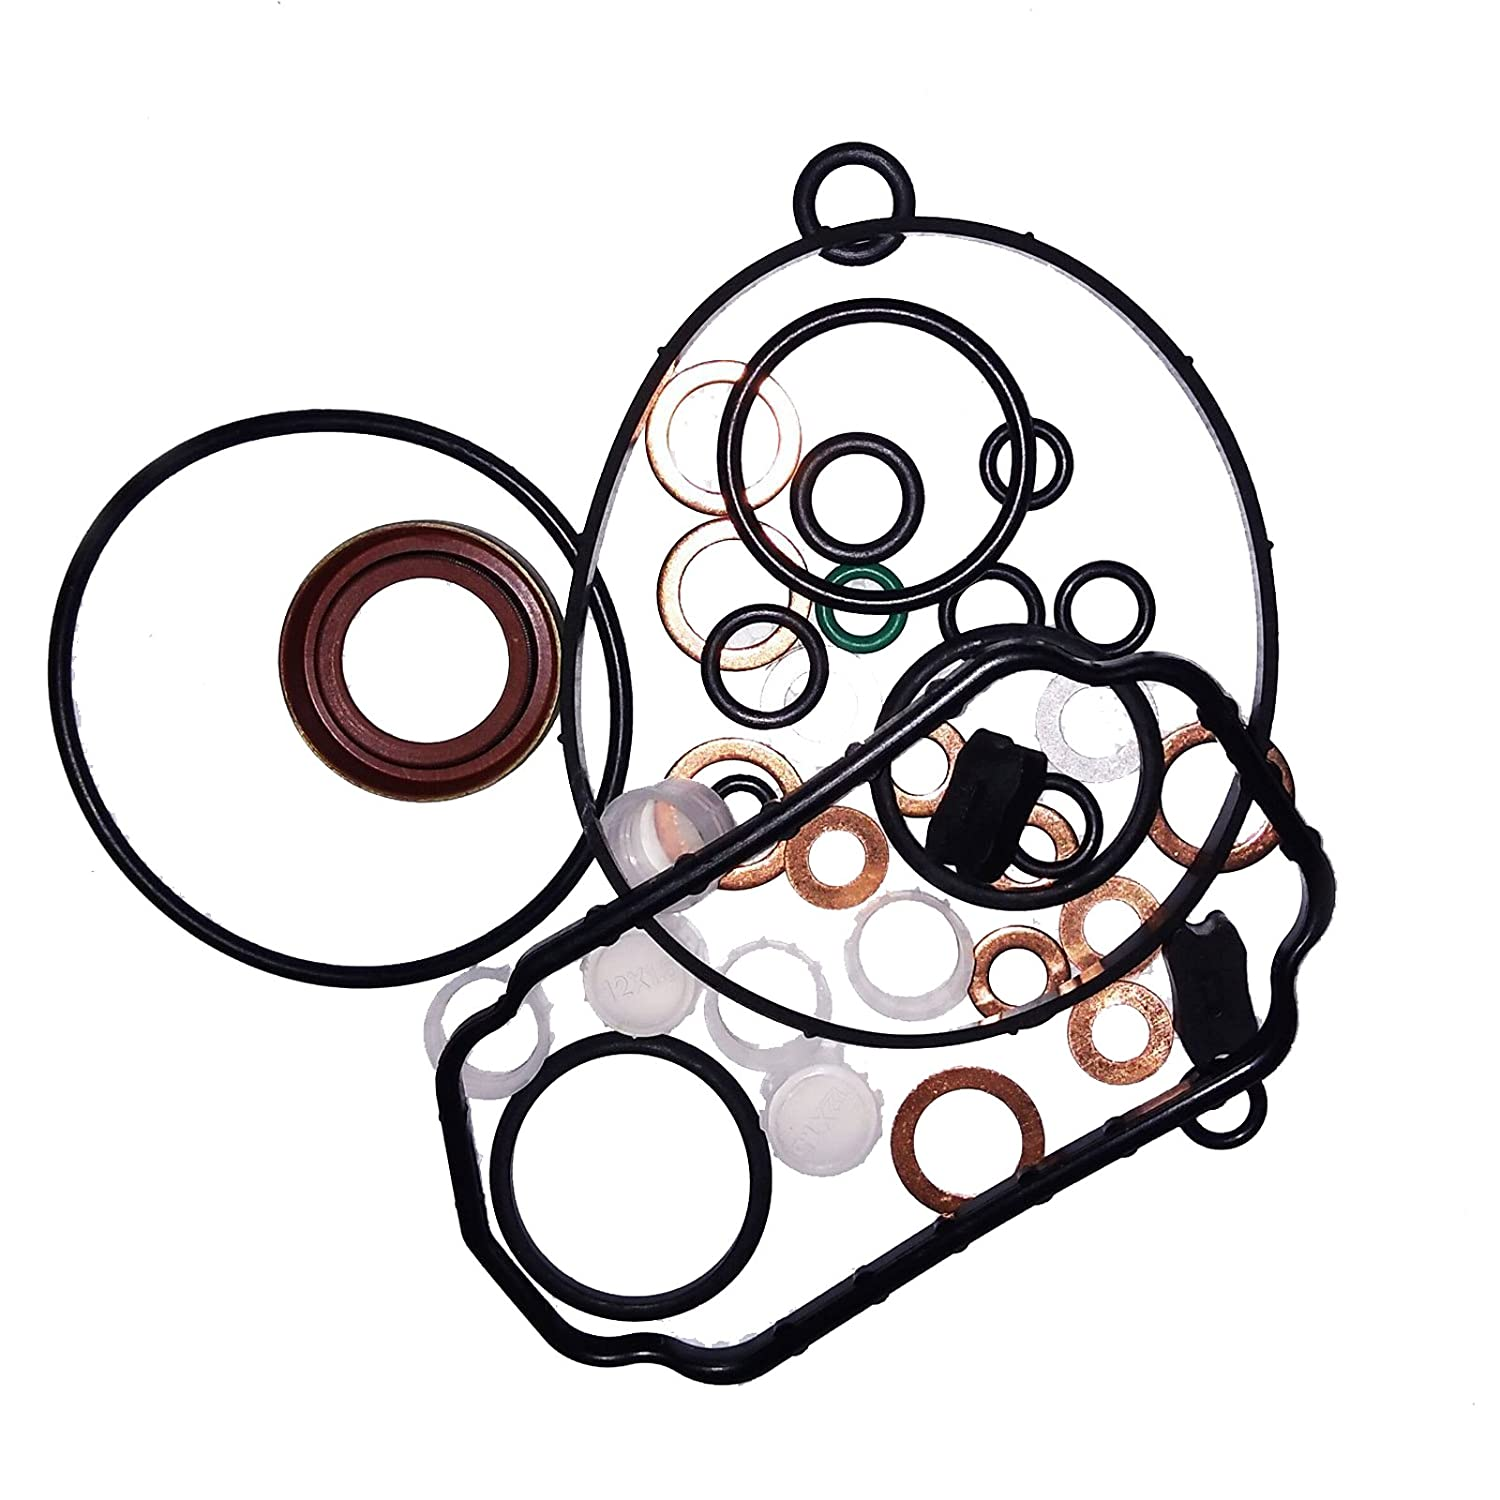 Friday Part VE Injection Pump gasket rebuild kit 1467010059 for 5.9 12V 2500 3500 Dodge Cummins